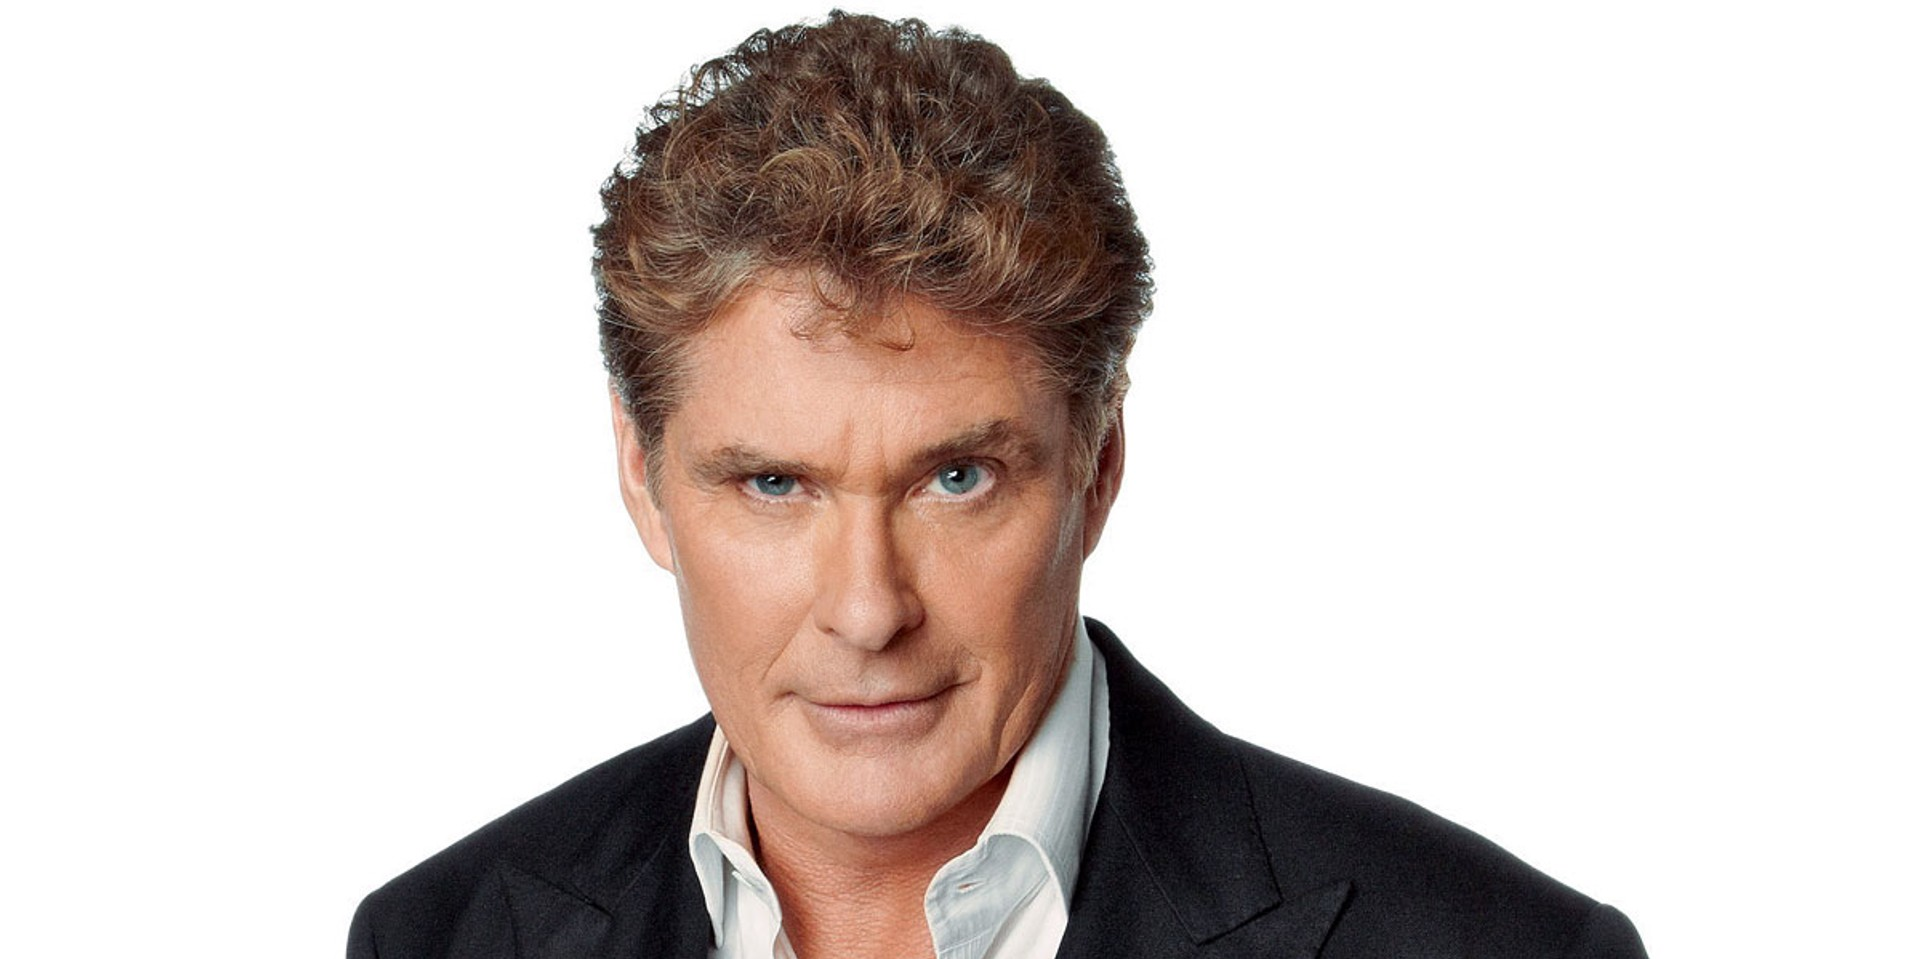 Sail with David Hasselhoff on this year's It's The Ship